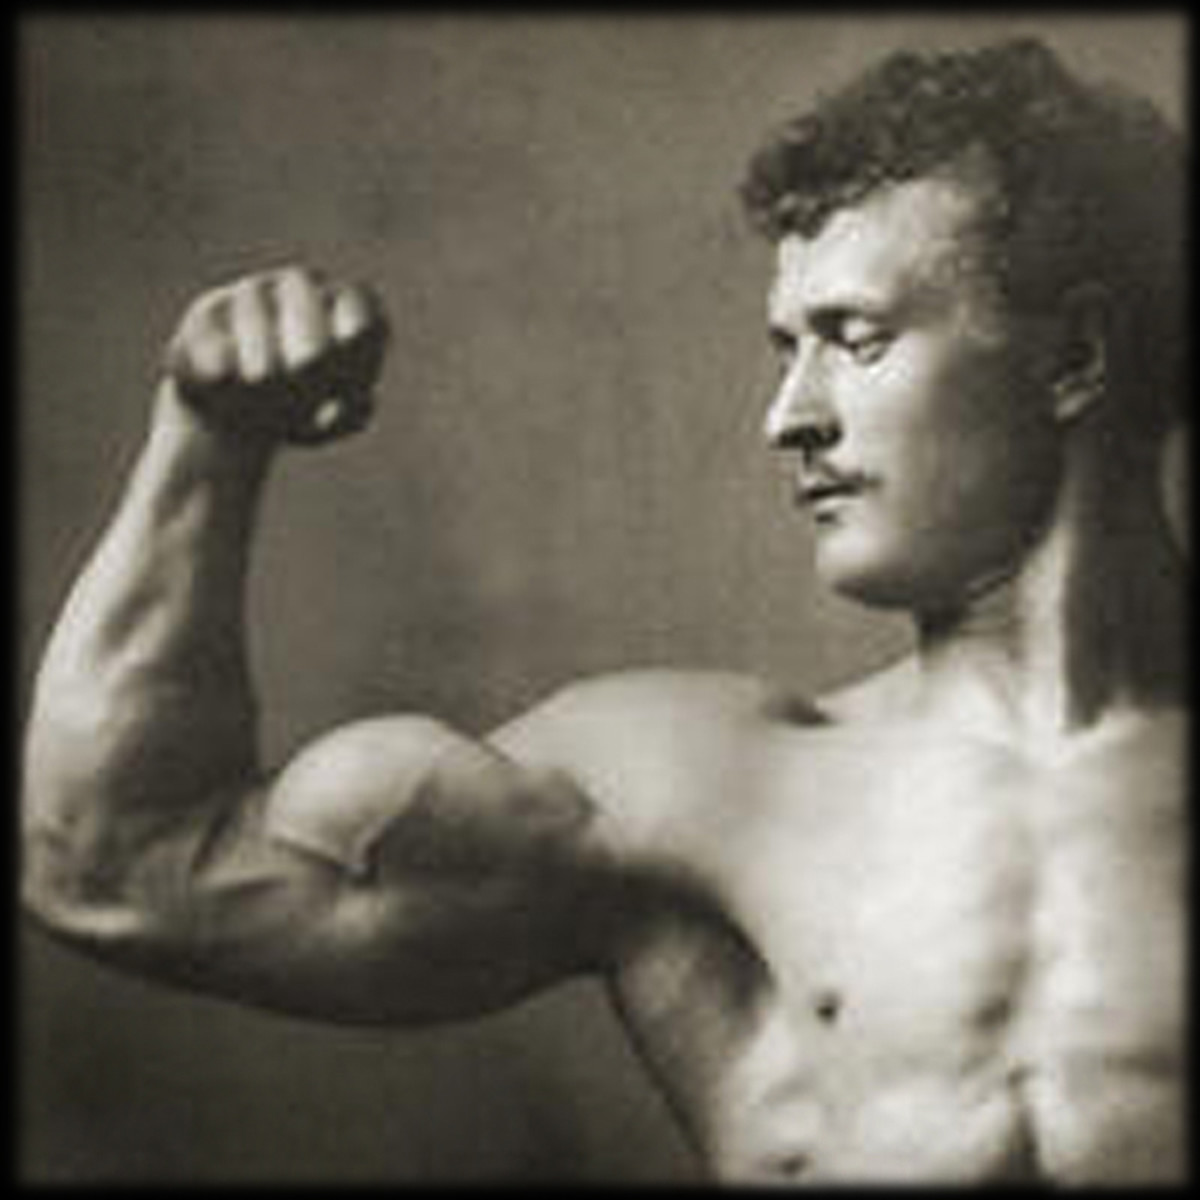 Eugen Sandow, the Father of Modern Bodybuilding who played a role in the shift from function towards pure aesthetics